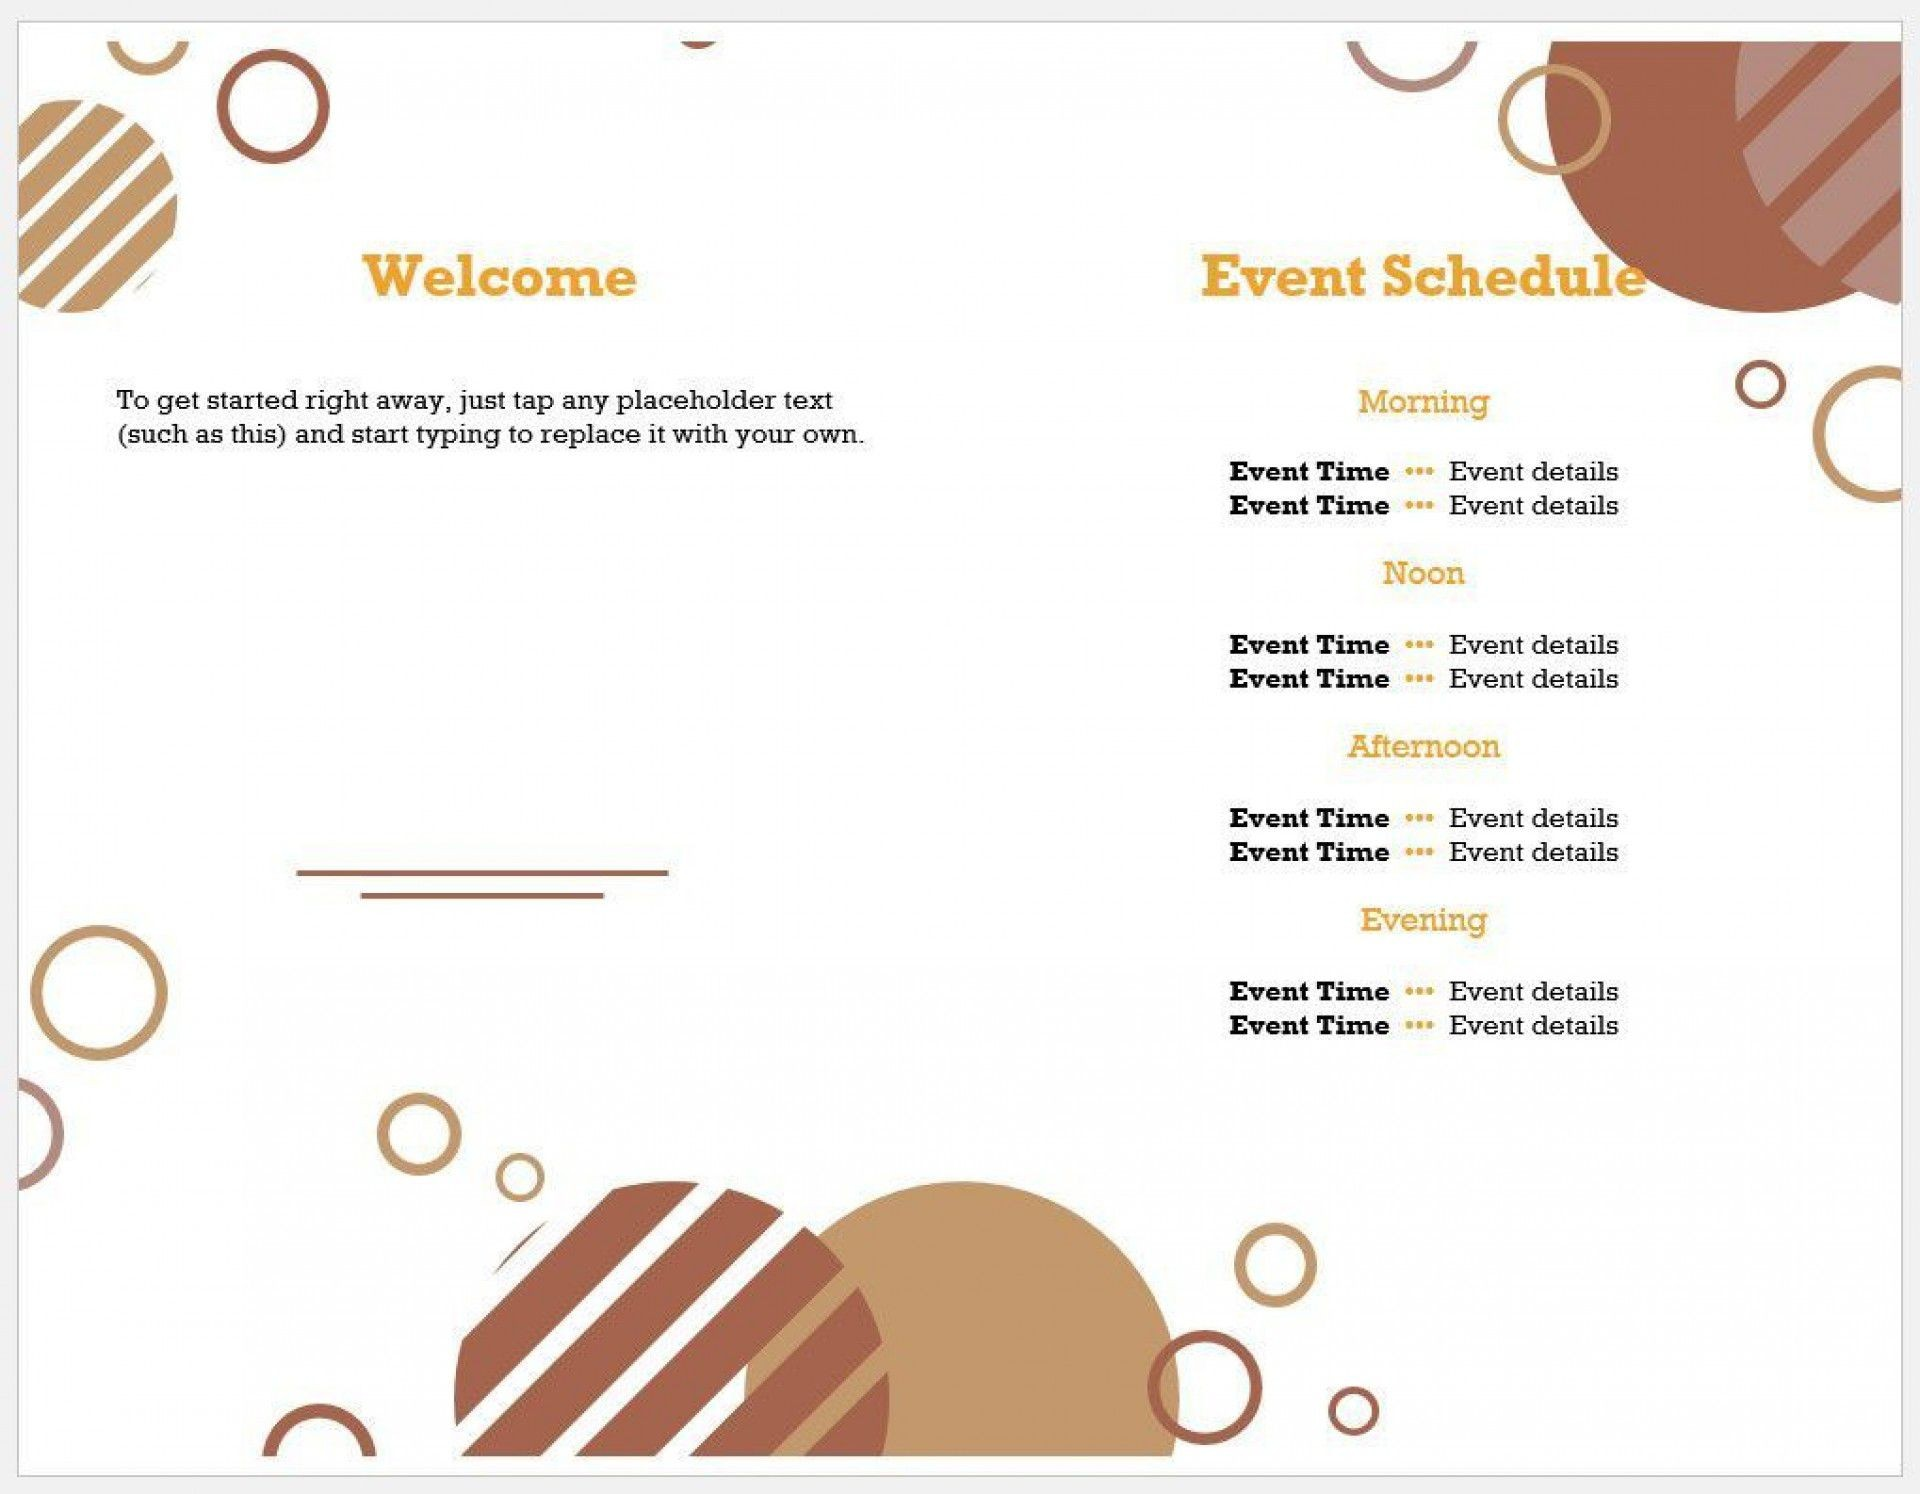 001 Top Free Event Program Template Picture  Schedule Psd Word1920